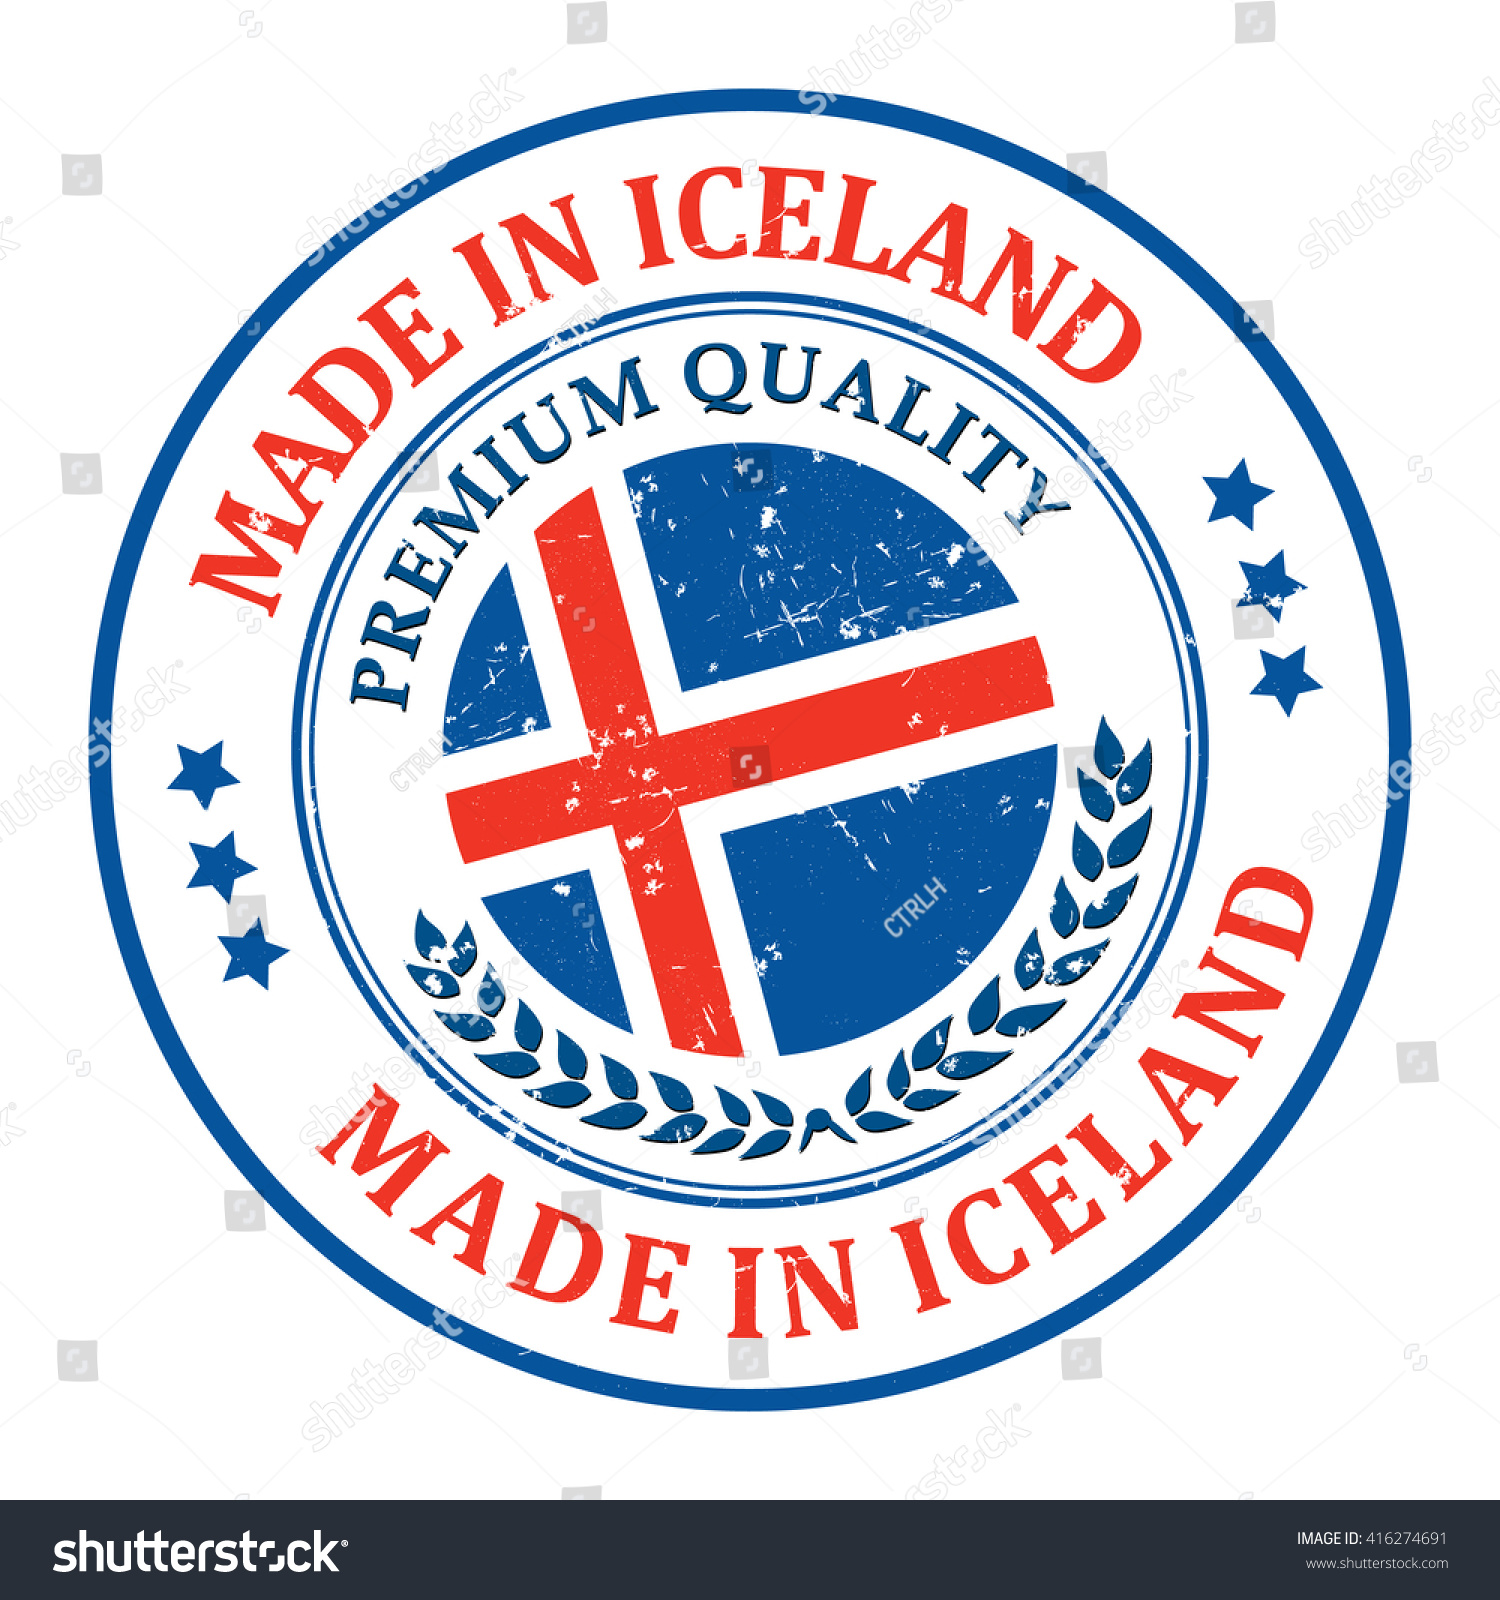 made in iceland grunge printable stamp label and sign with national flag colors premium